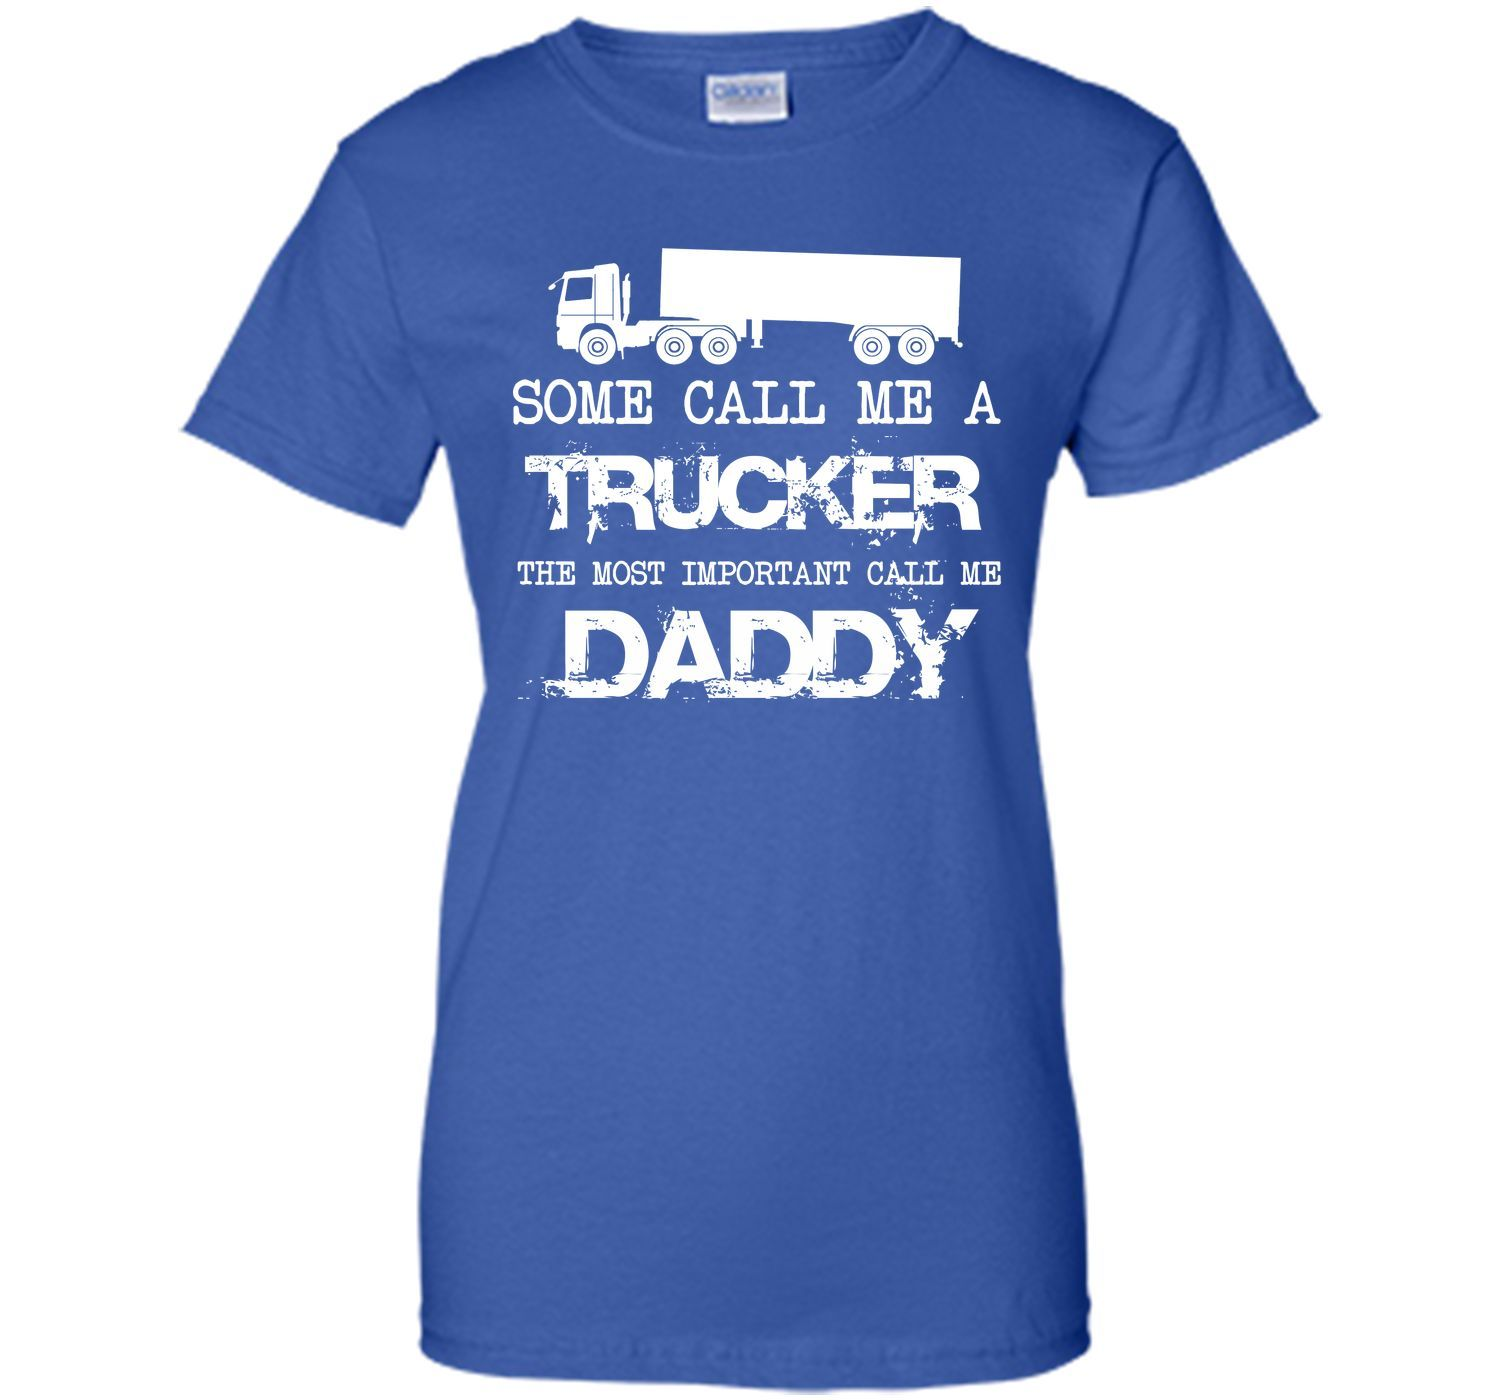 Trucker daddy tshirt products pinterest products